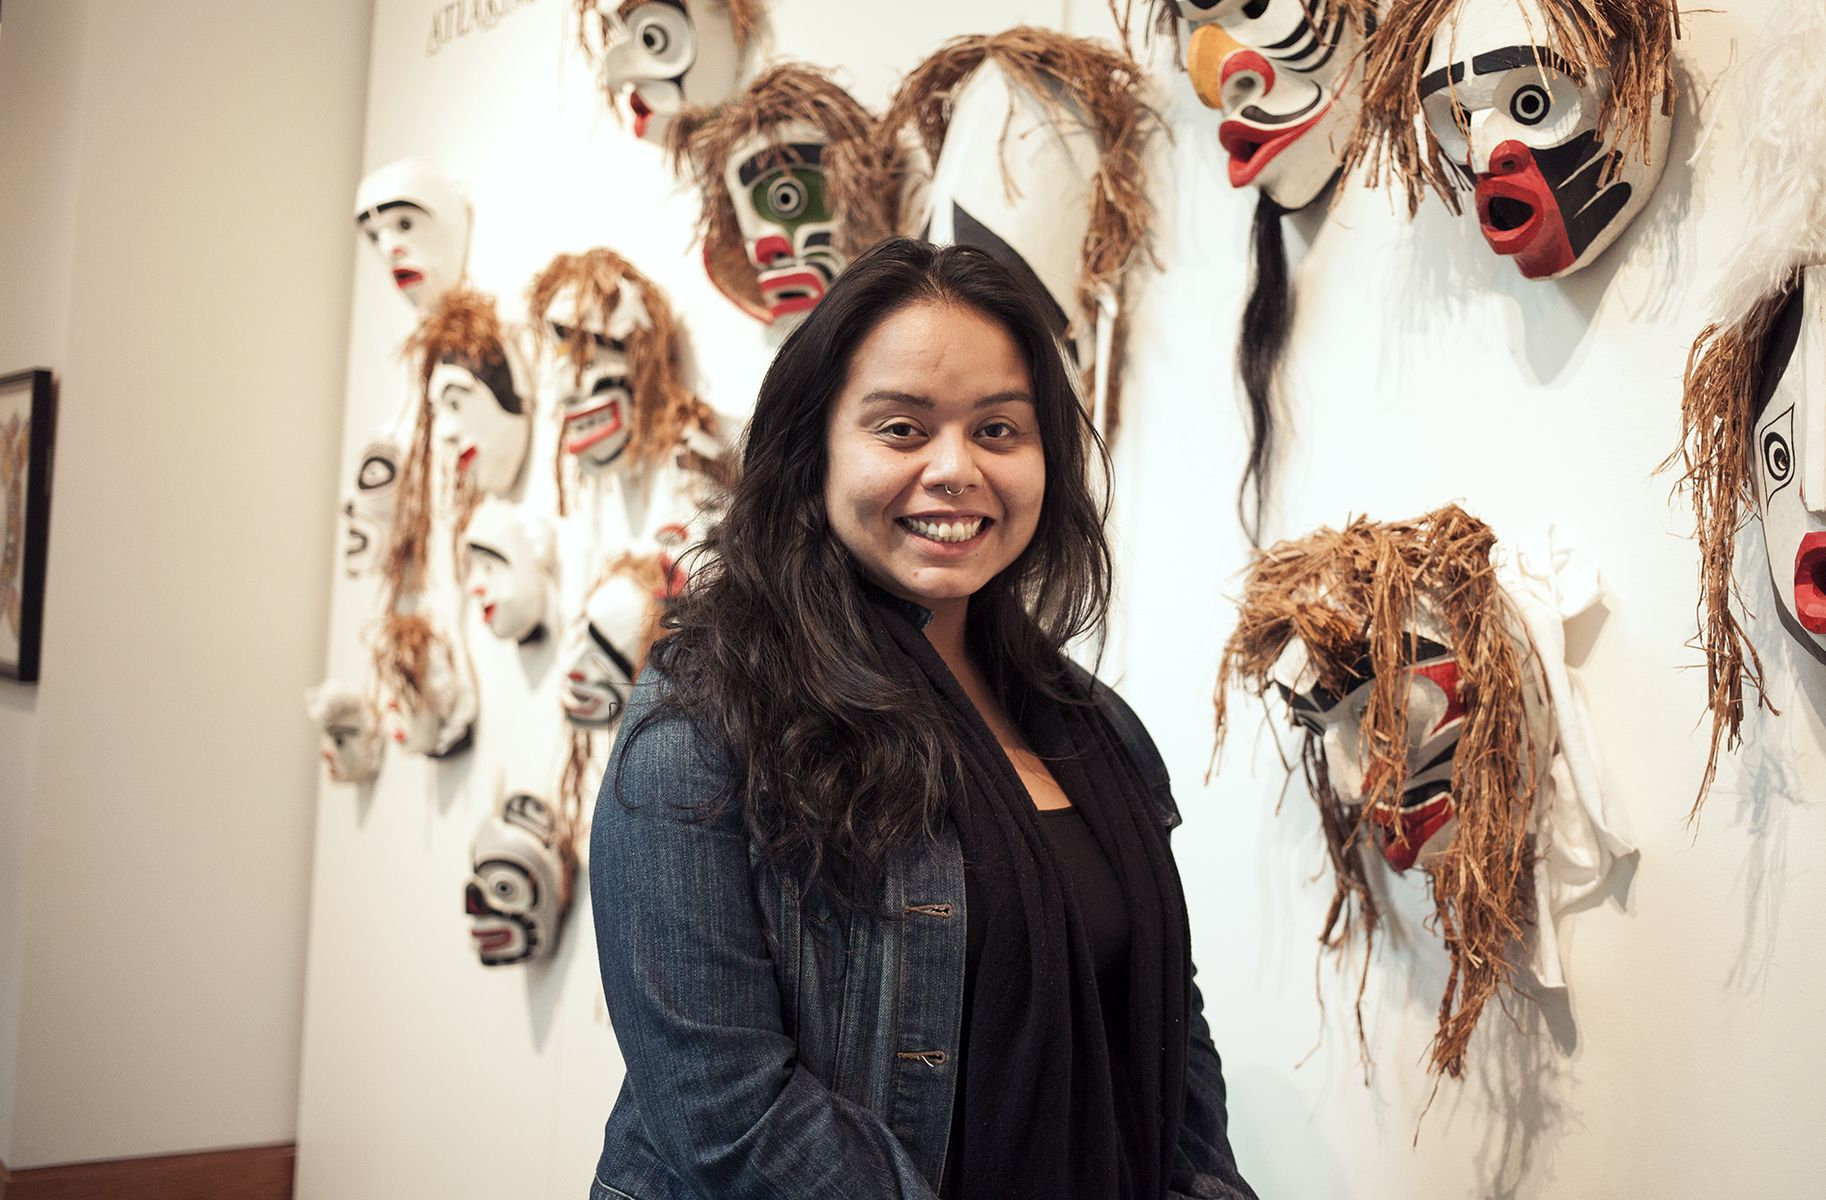 Smiling woman stands in front on which masks and headdresses are displayed.